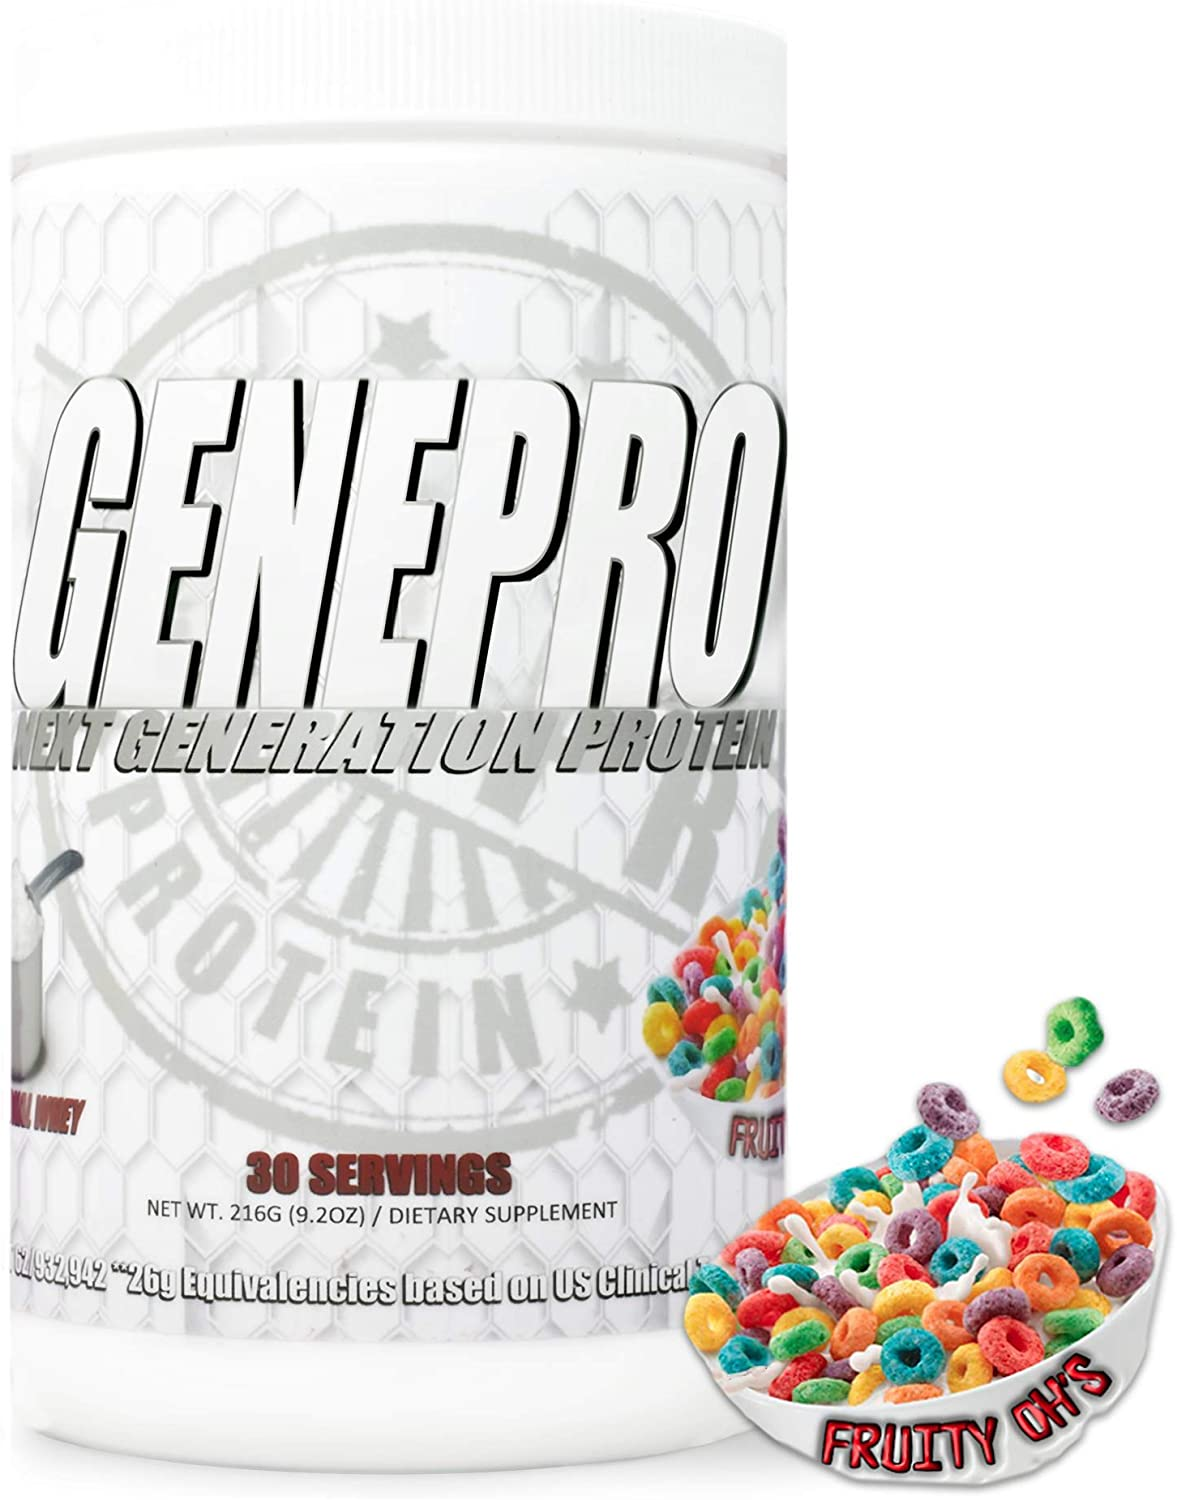 GENEPRO Protein Fruity Oh's Flavor, 30 Servings Size Premium Low-Calorie Protein for Absorption, Muscle Growth and Mix-Ability